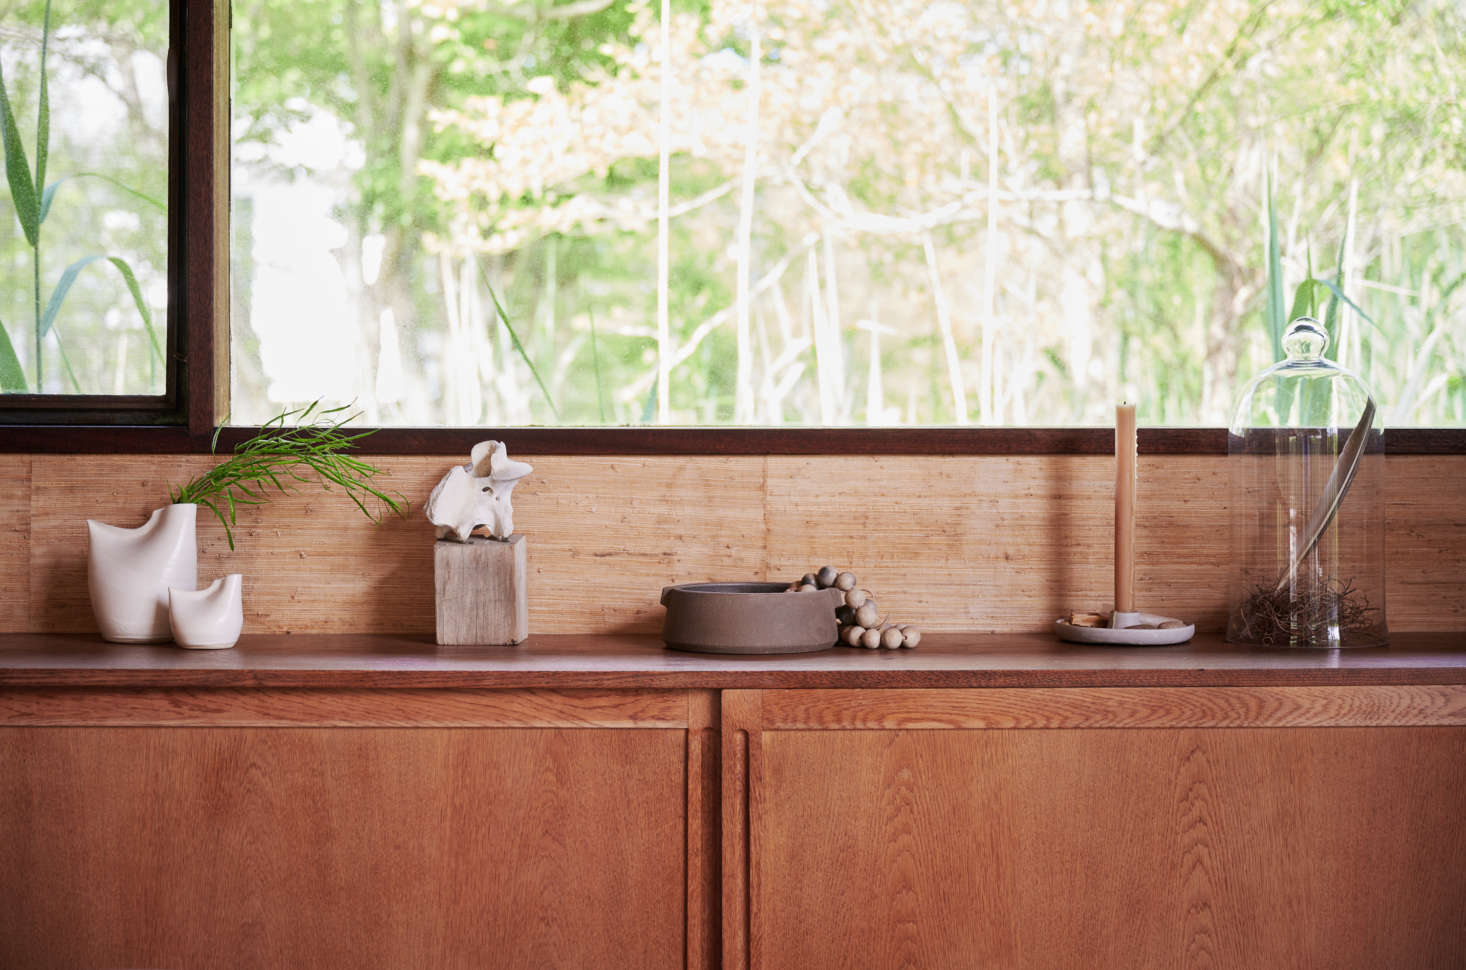 A simple vignette on a sideboard: a string of Tunisian Clay Beads ($98); a Stoneware Candlestick Holder ($68), made in Illinois; and a single beeswax candle. (We like the Beeswax Column Candles, $33 a pair, hand-poured in the Catskills.)